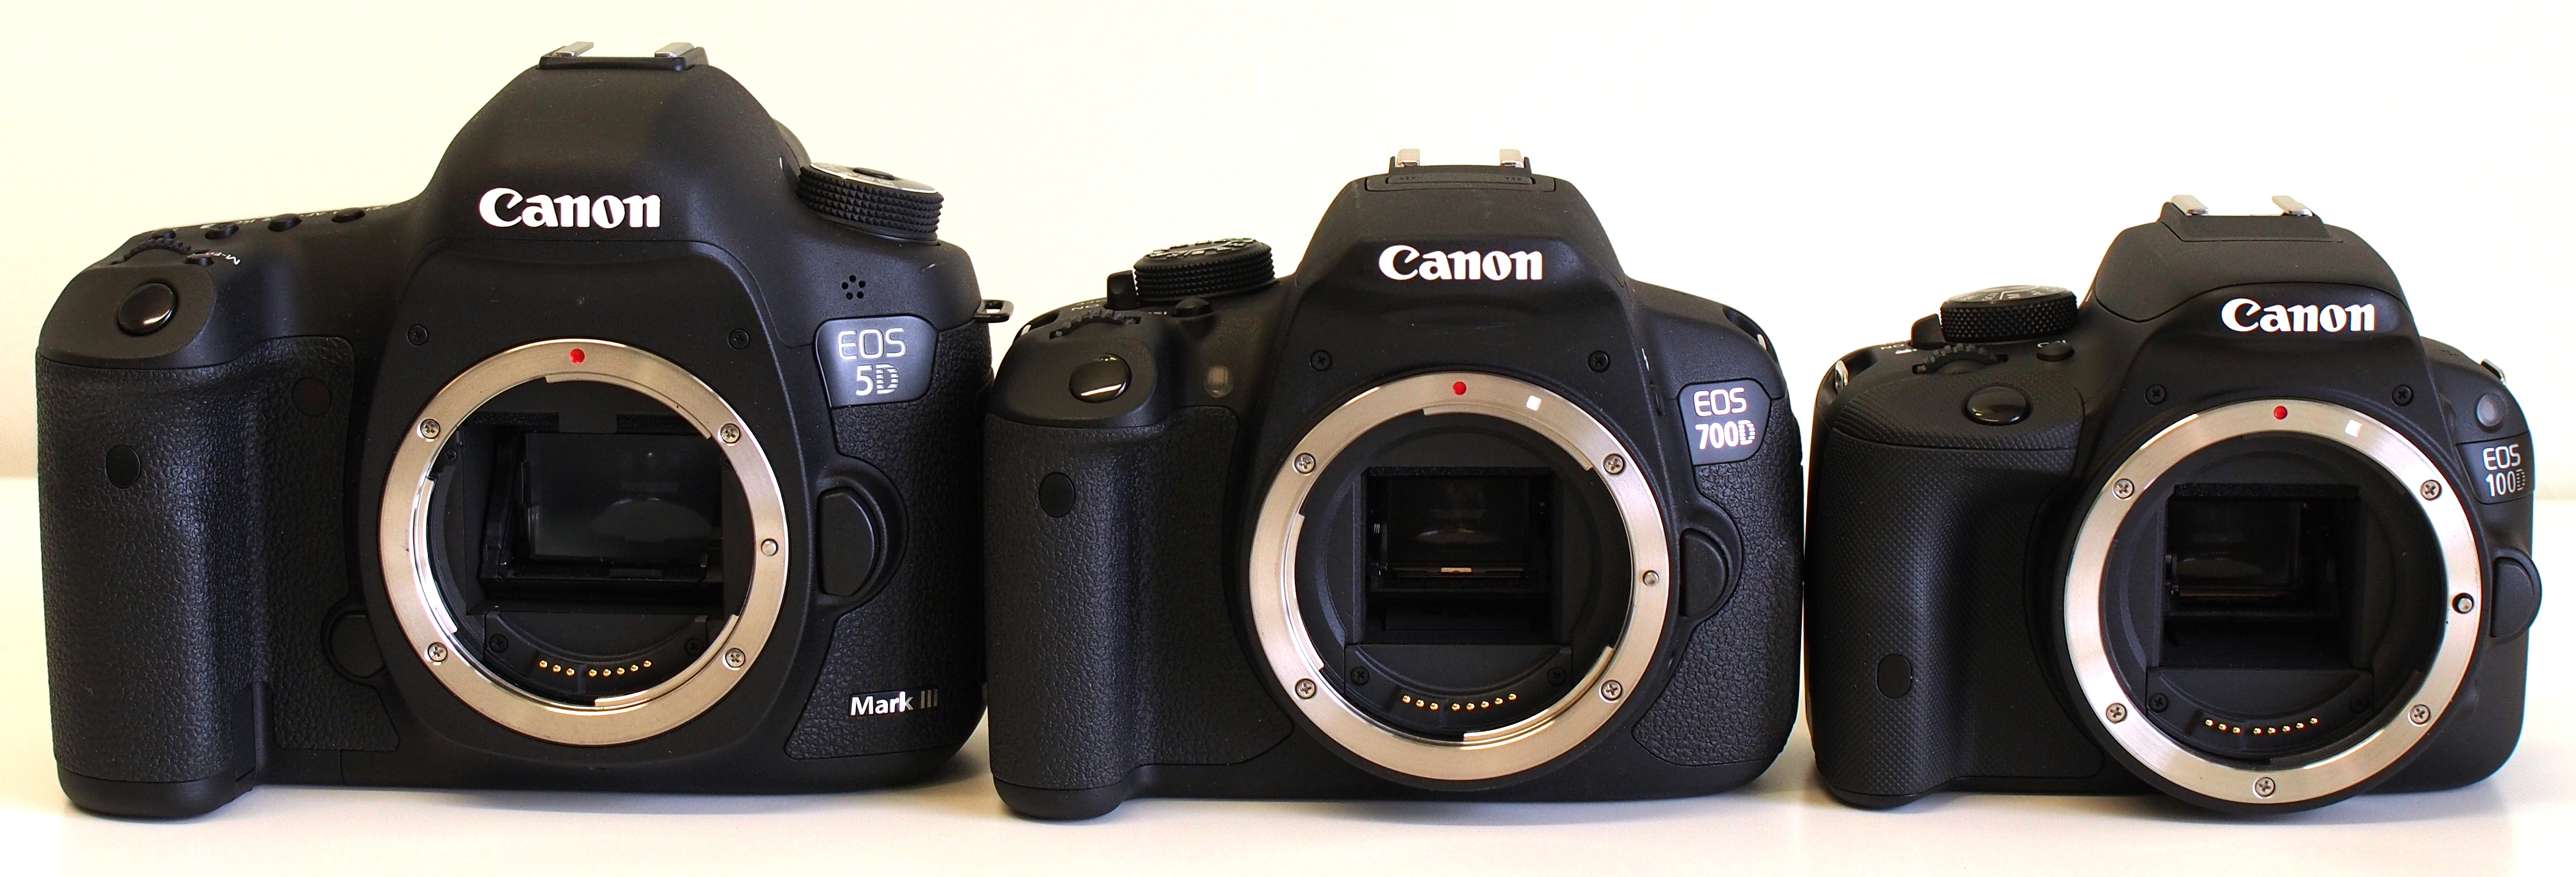 Canon EOS 100D Vs 700D DSLR Comparison | ePHOTOzine